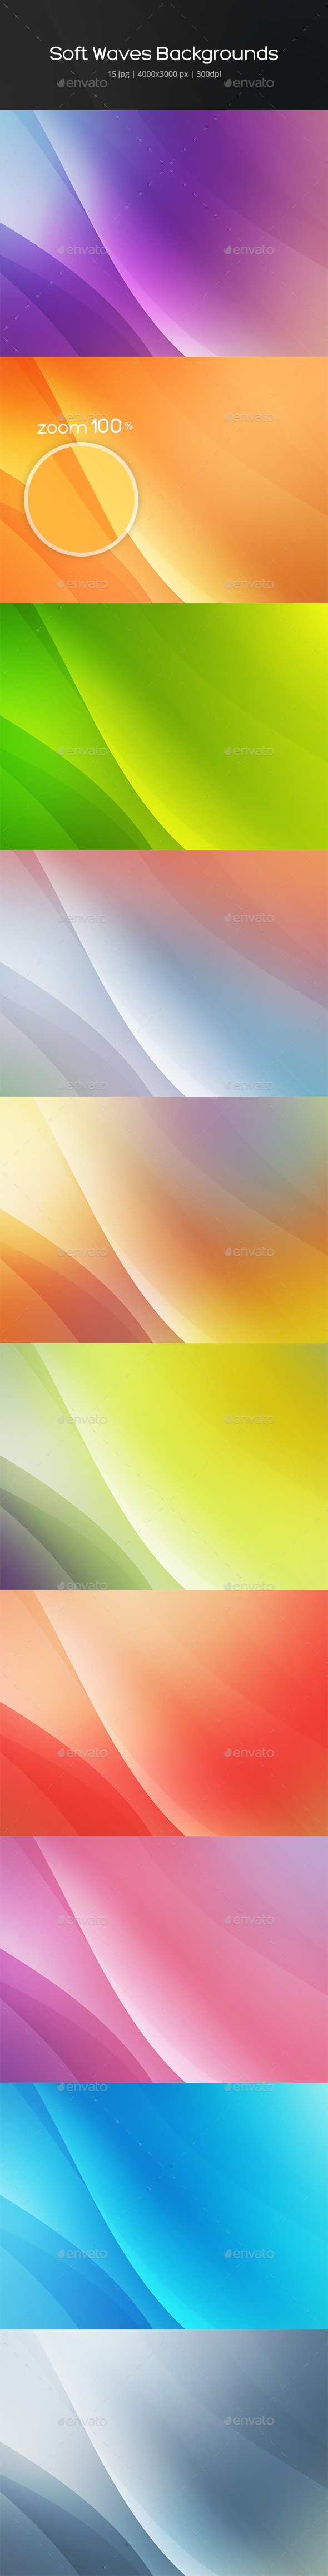 Soft Waves Backgrounds - Abstract Backgrounds